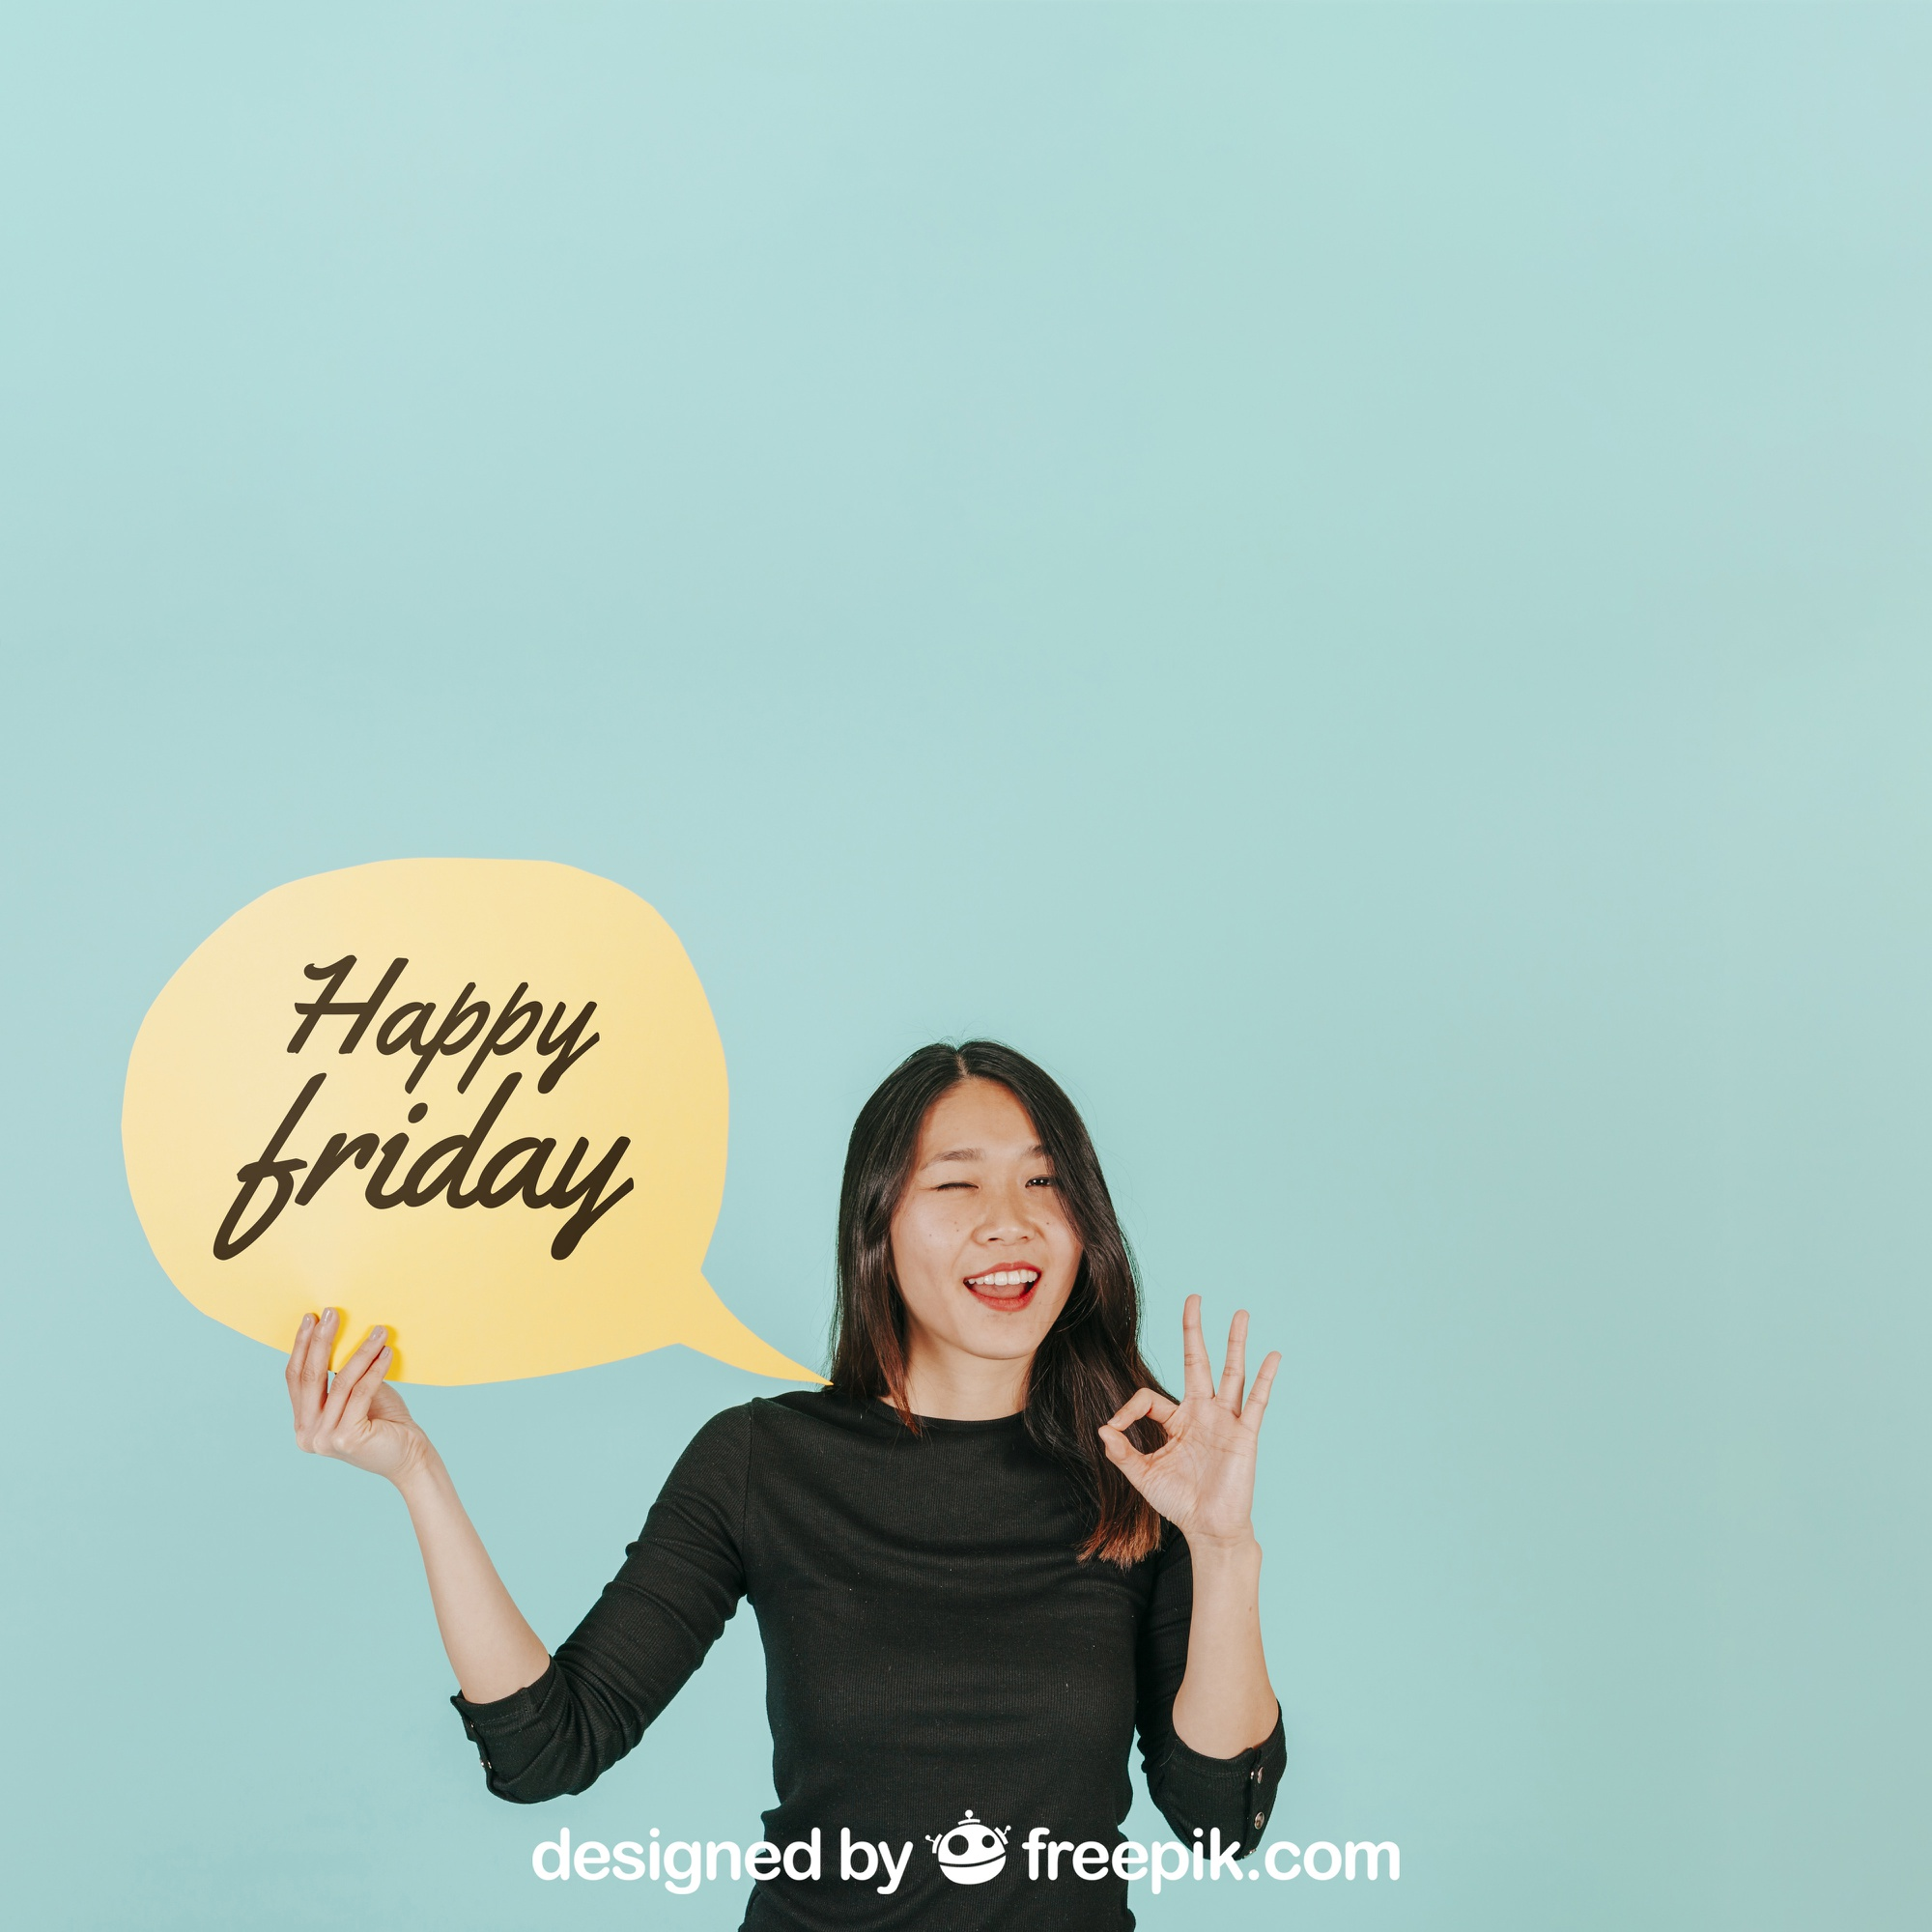 Woman making ok sign with speech bubble mockup